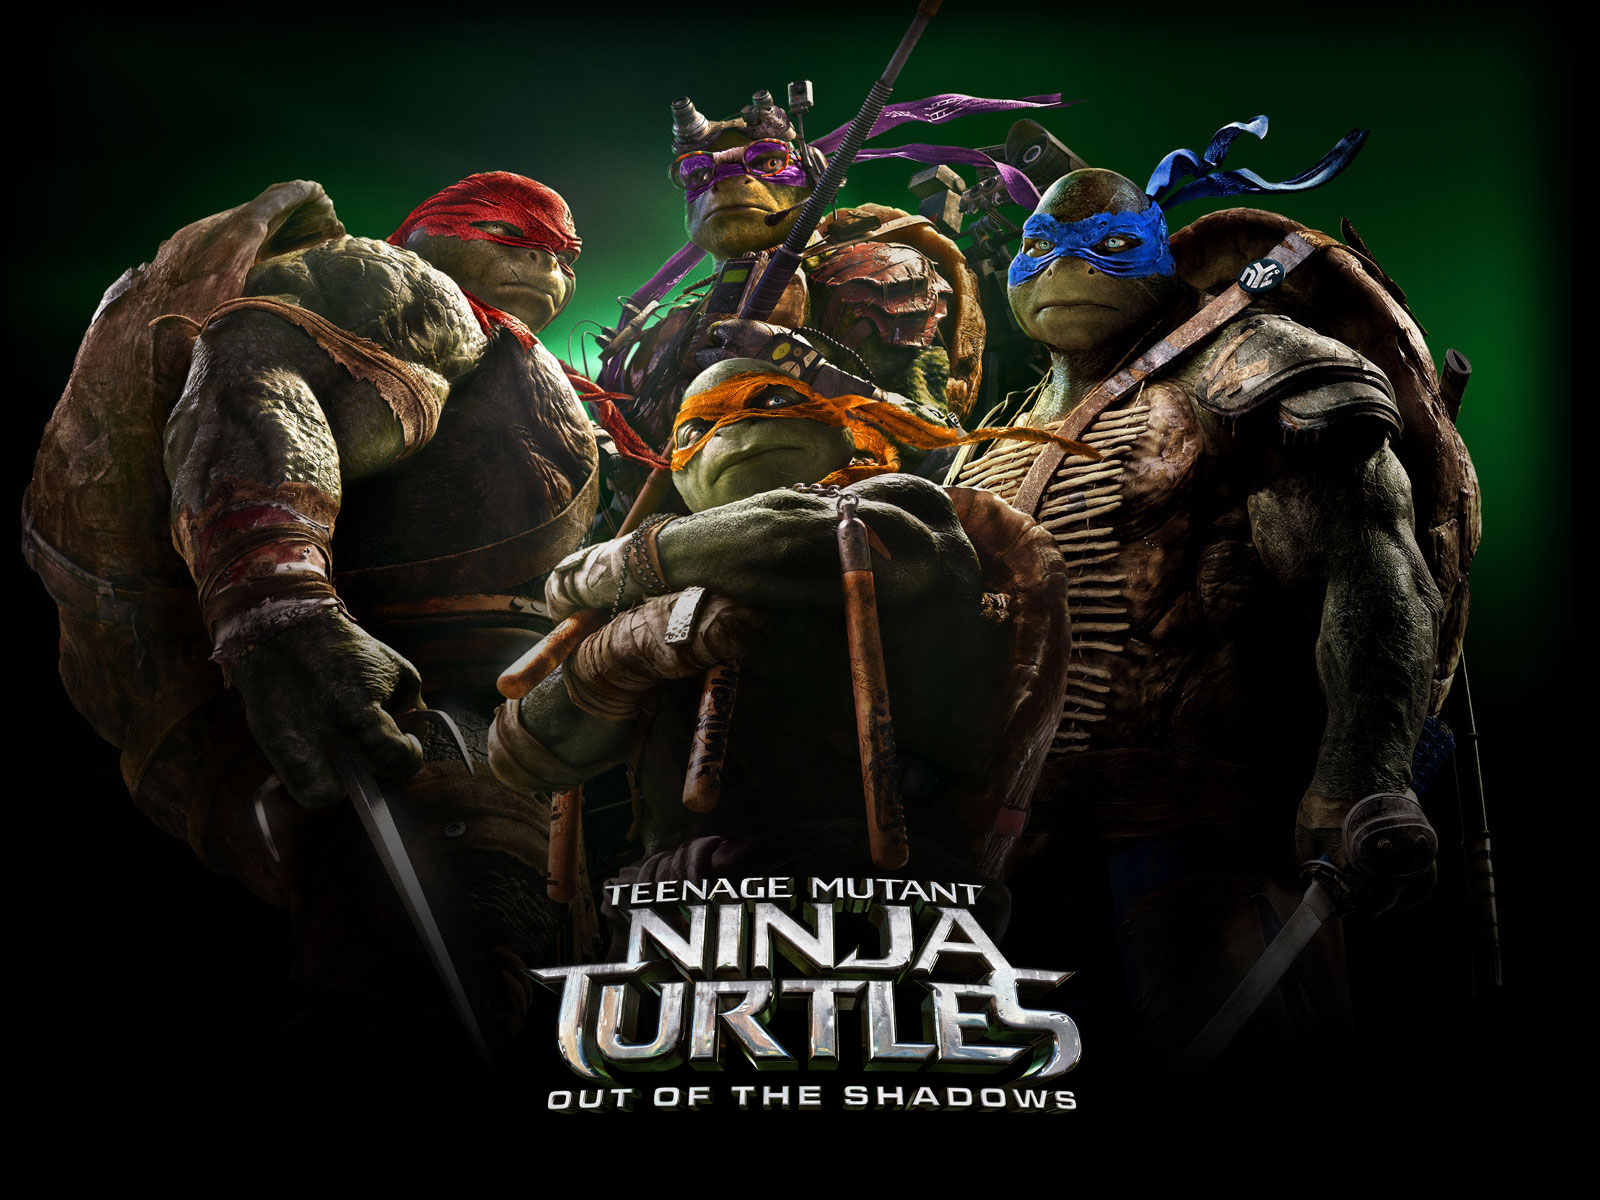 ... .com/donwload/ninja-turtles-out-of-the-shadows-ps3-release-date.asp